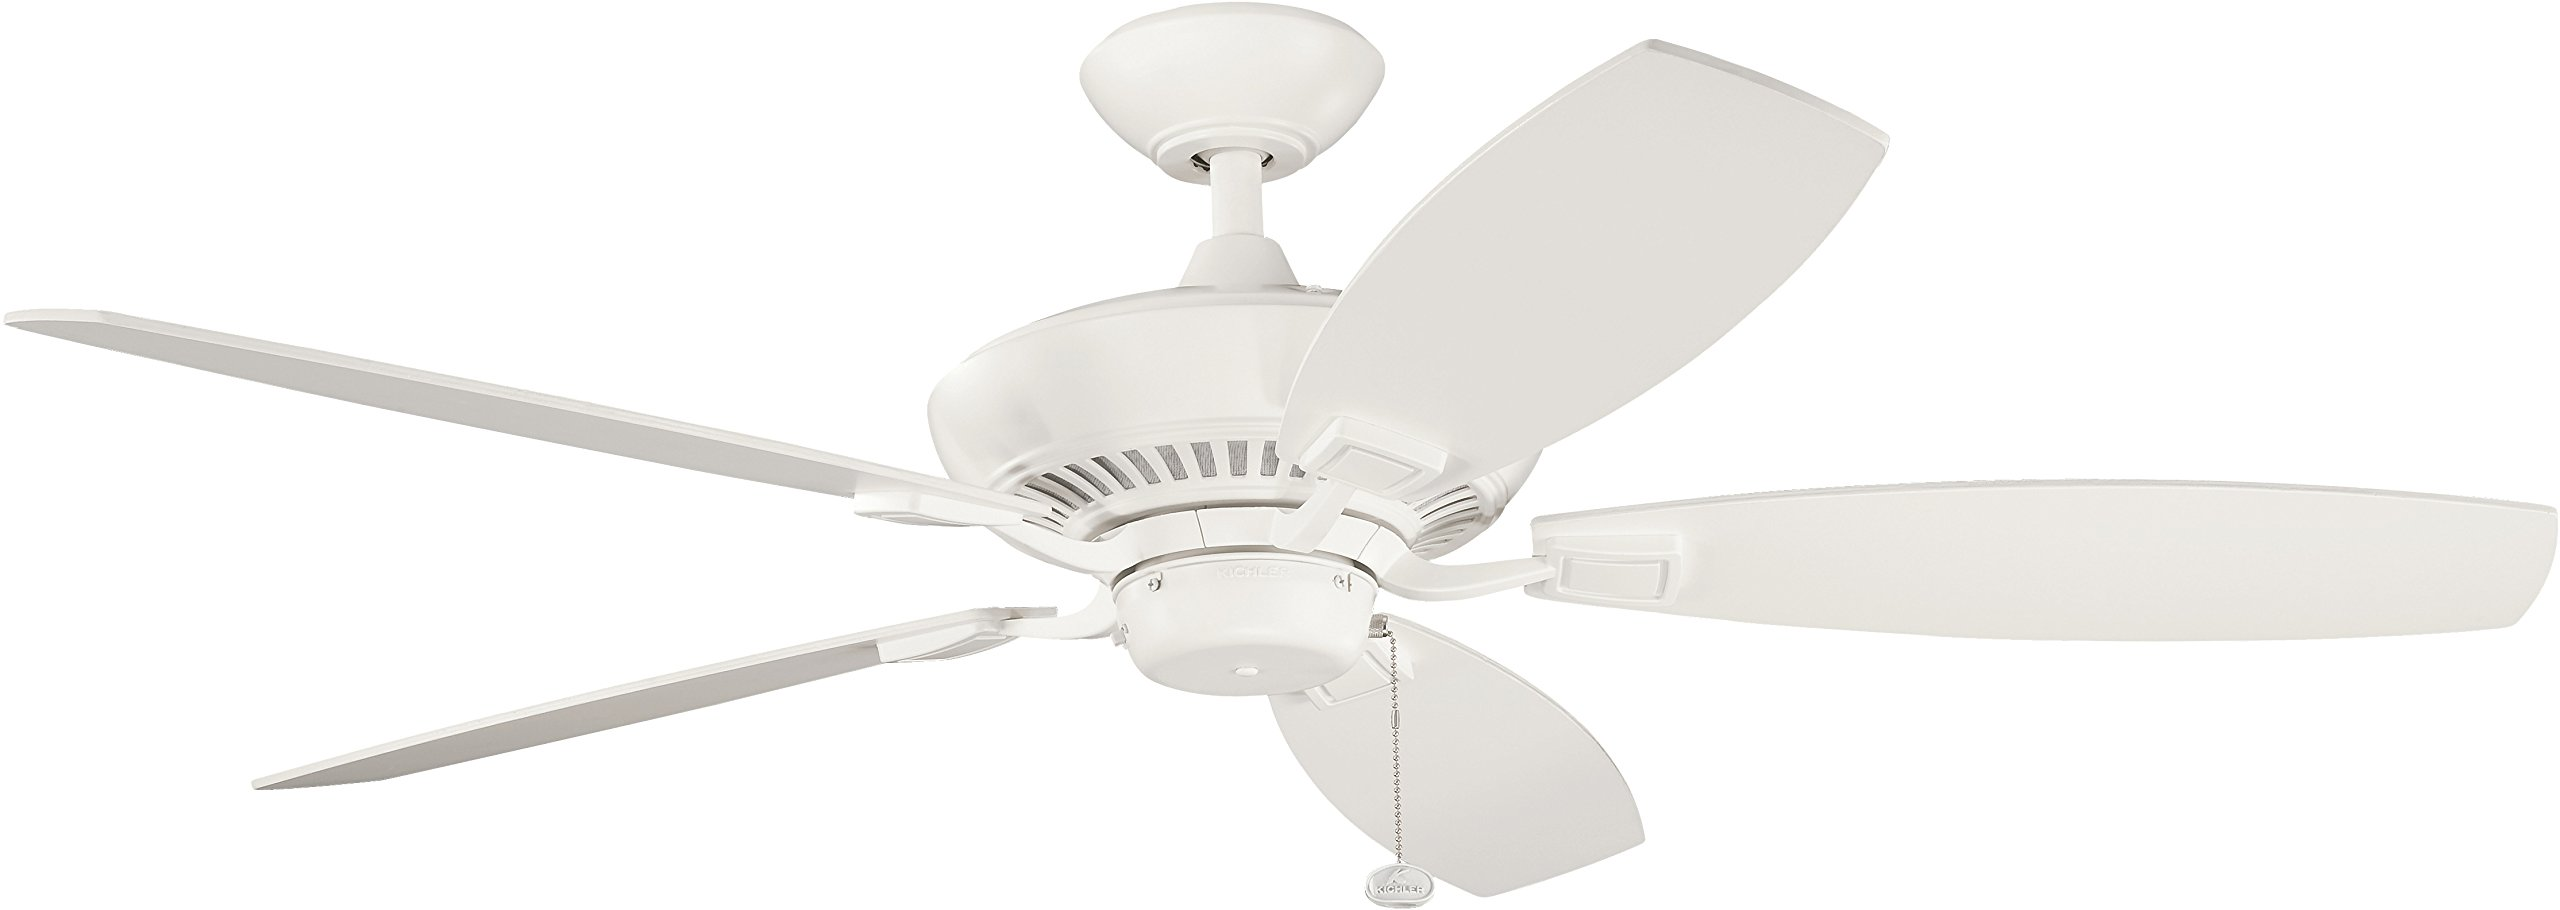 Kichler 300117WH 52-Inch Canfield Fan, White